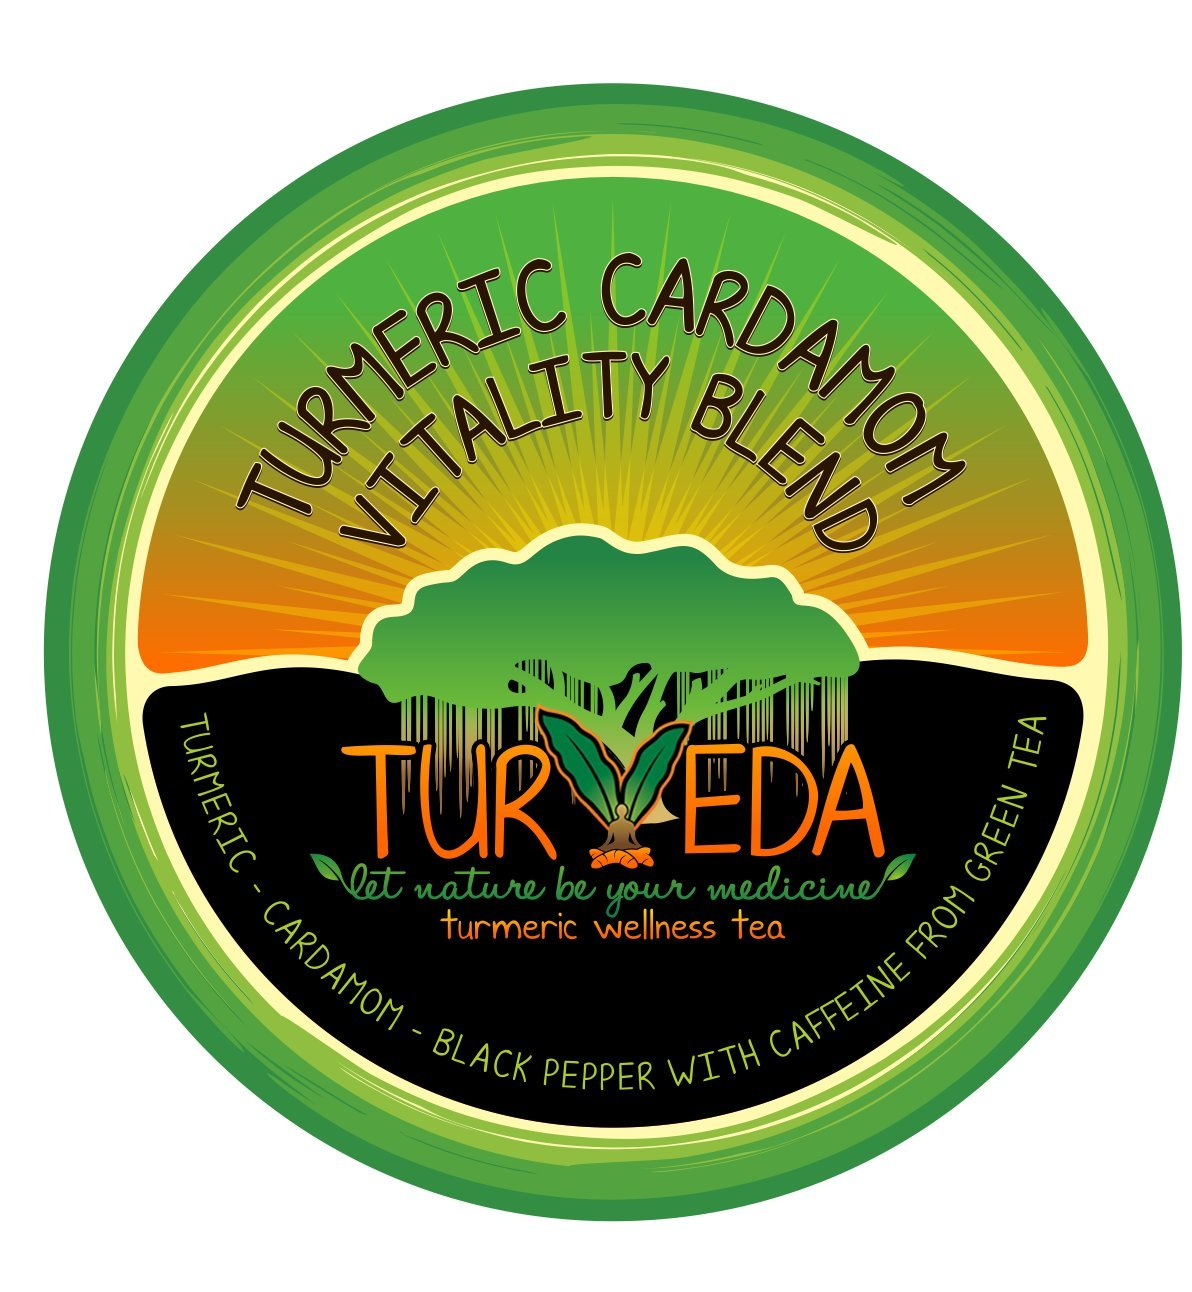 Turveda Golden Tea, Turmeric Cardamom Tea for Keurig K-Cup Brewer, Green Tea Caffeinated, 95% Curcumin K-Cup Supplement For Cardiovascular Support & Healthy Aging, 100% Natural,15 Single Serve Cups by Turveda